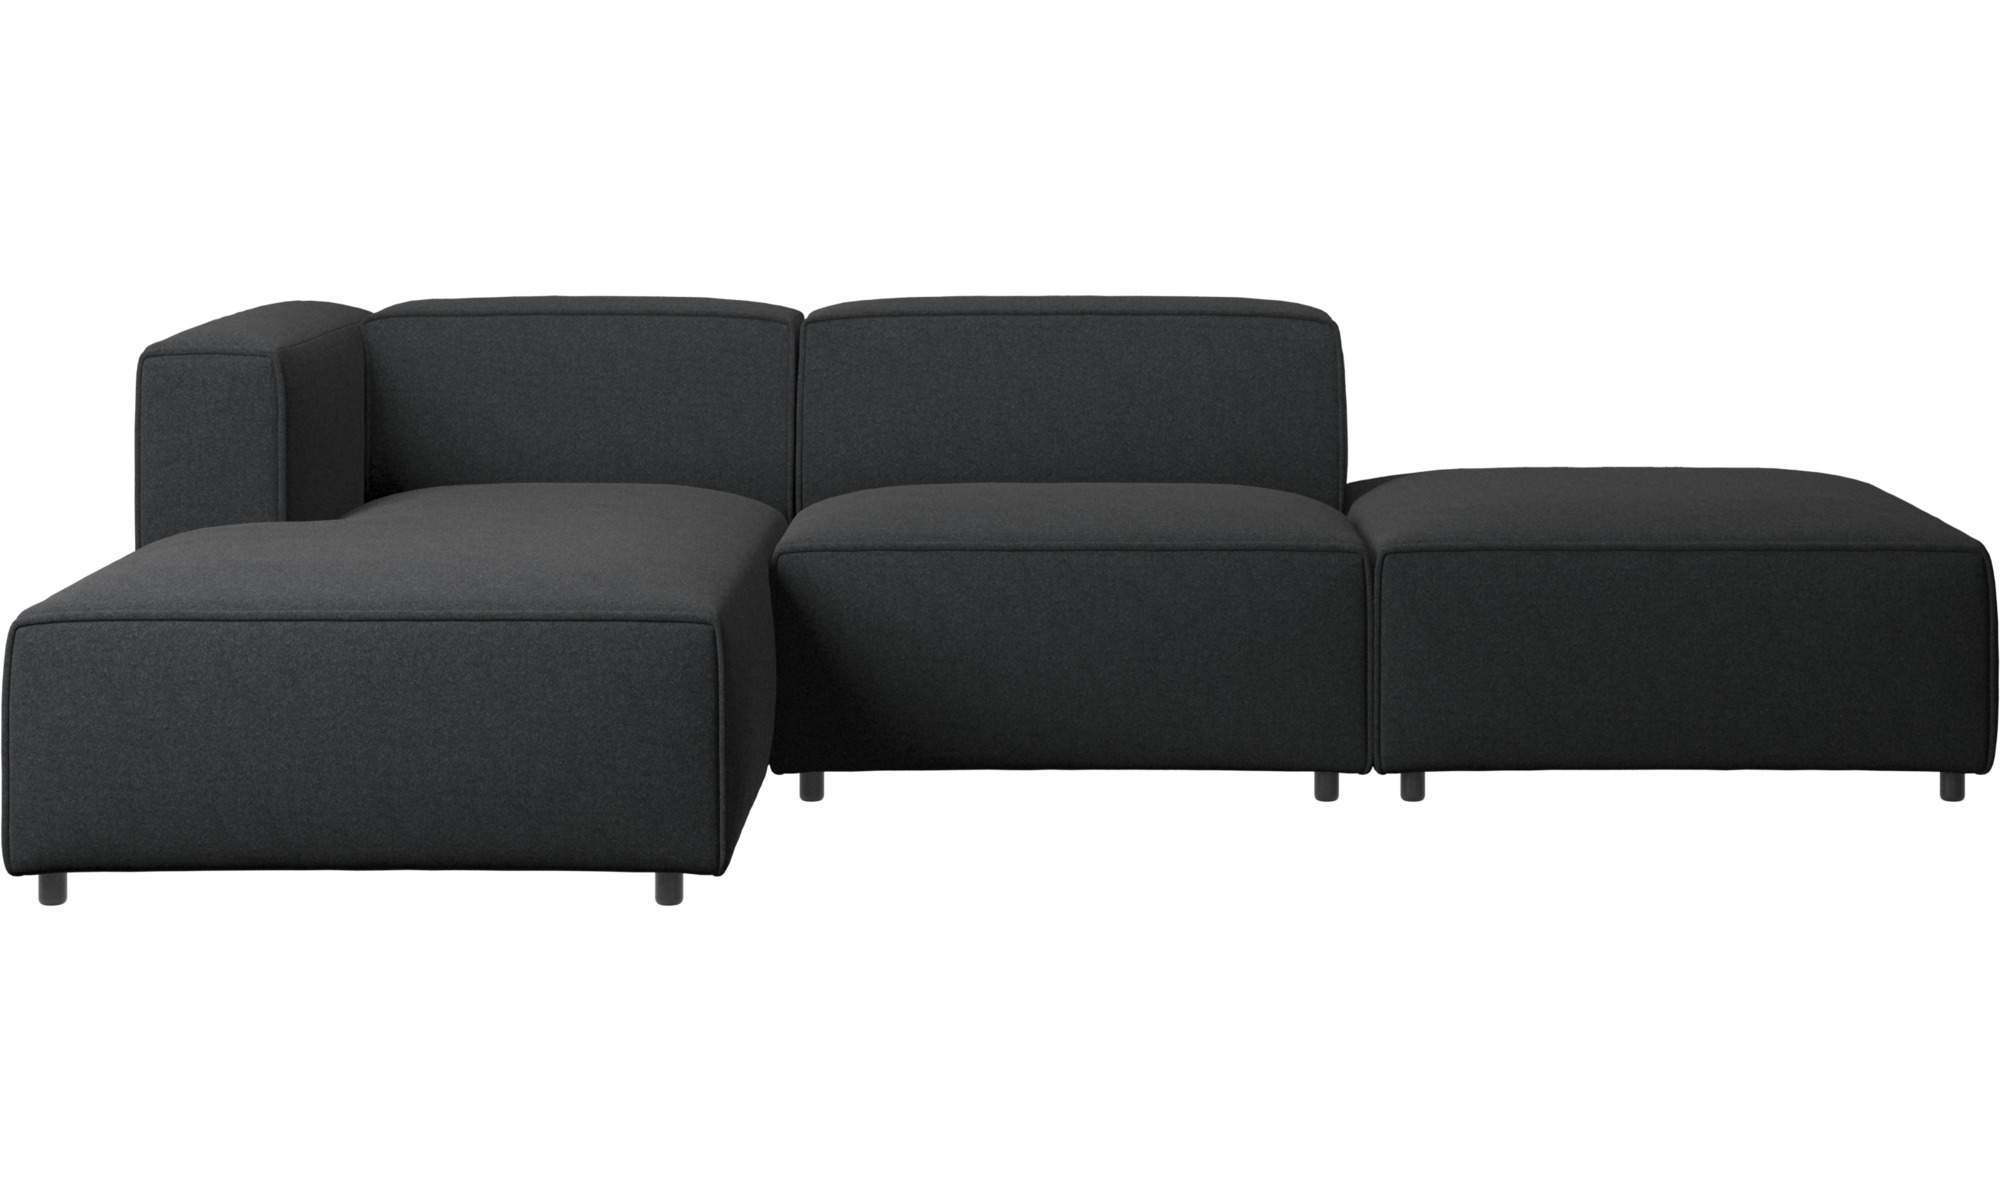 chaise lounge sofas carmo sofa with lounging and resting unit boconcept. Black Bedroom Furniture Sets. Home Design Ideas